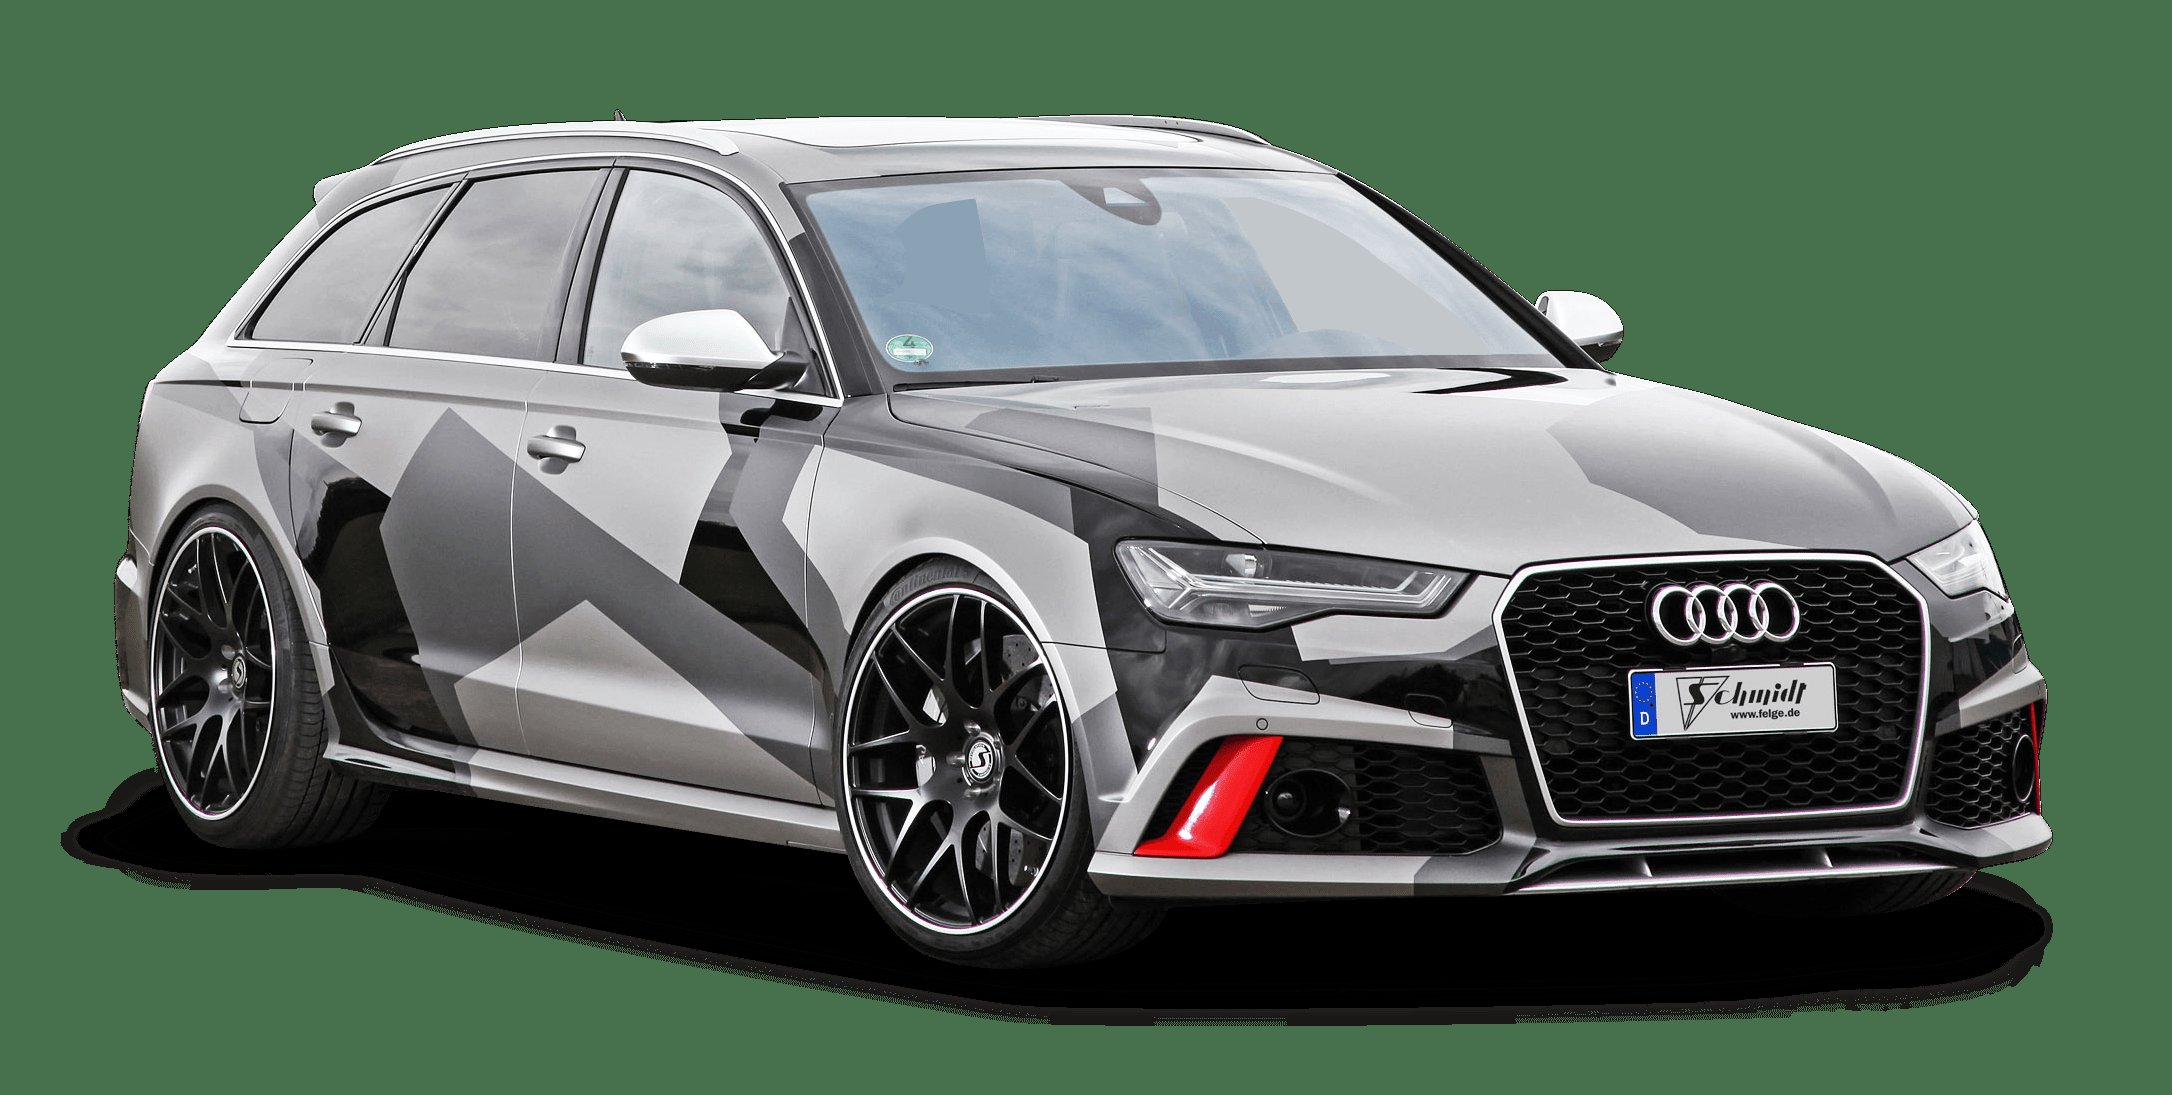 Latest Grey Audi Rs6 Avant Car Png Image Pngpix Free Download